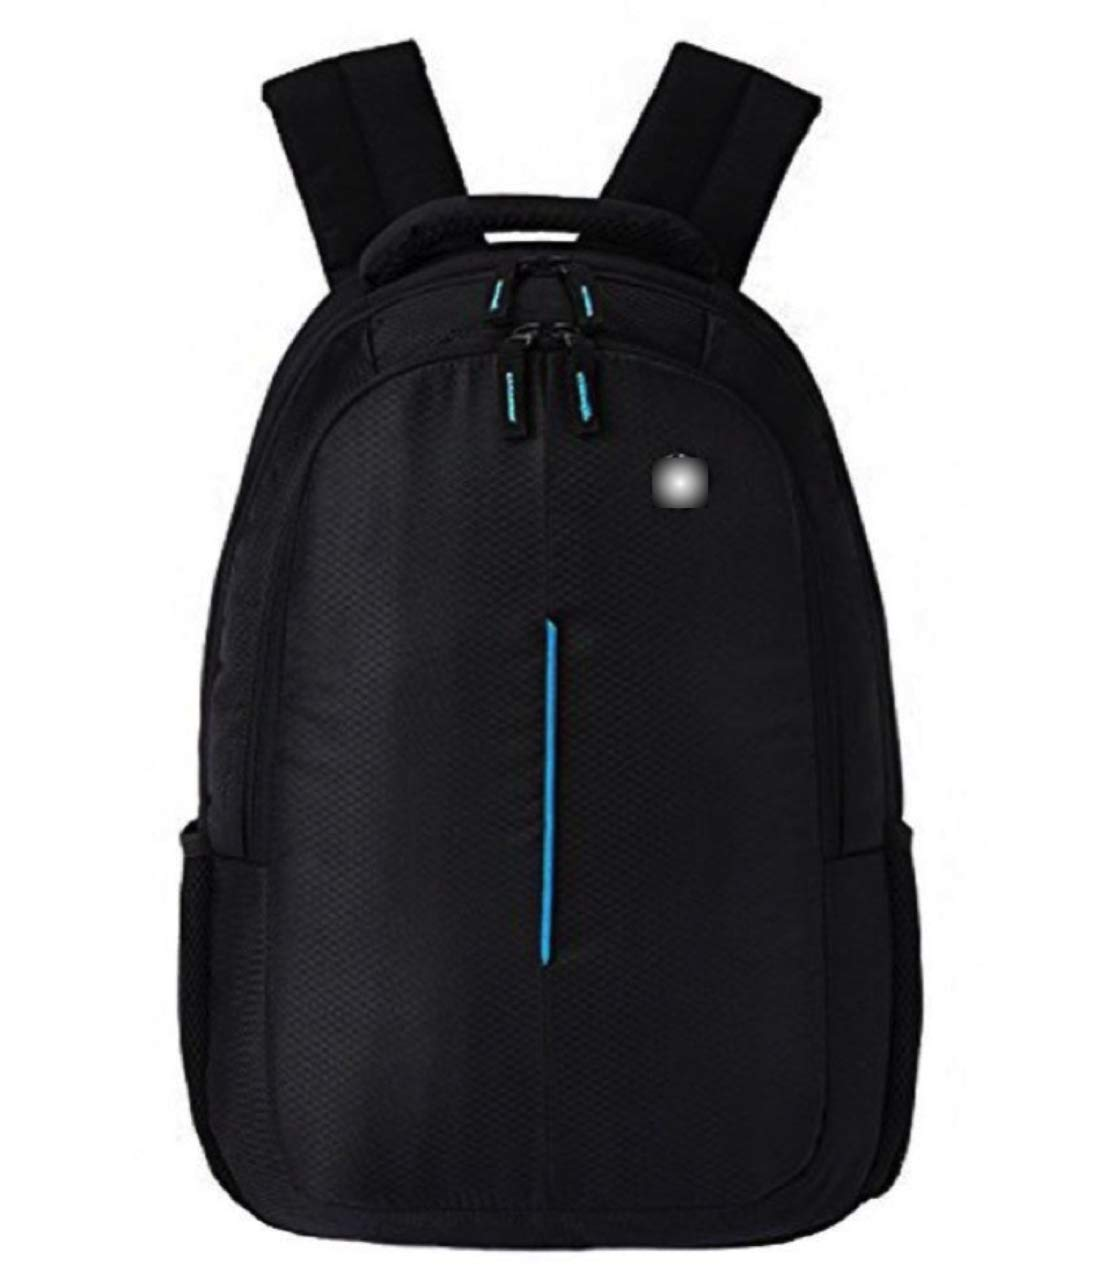 a77ccac046eb MONCI 15inch Hydro ESSINTIAL Laptop Backpack  Amazon.in  Bags ...